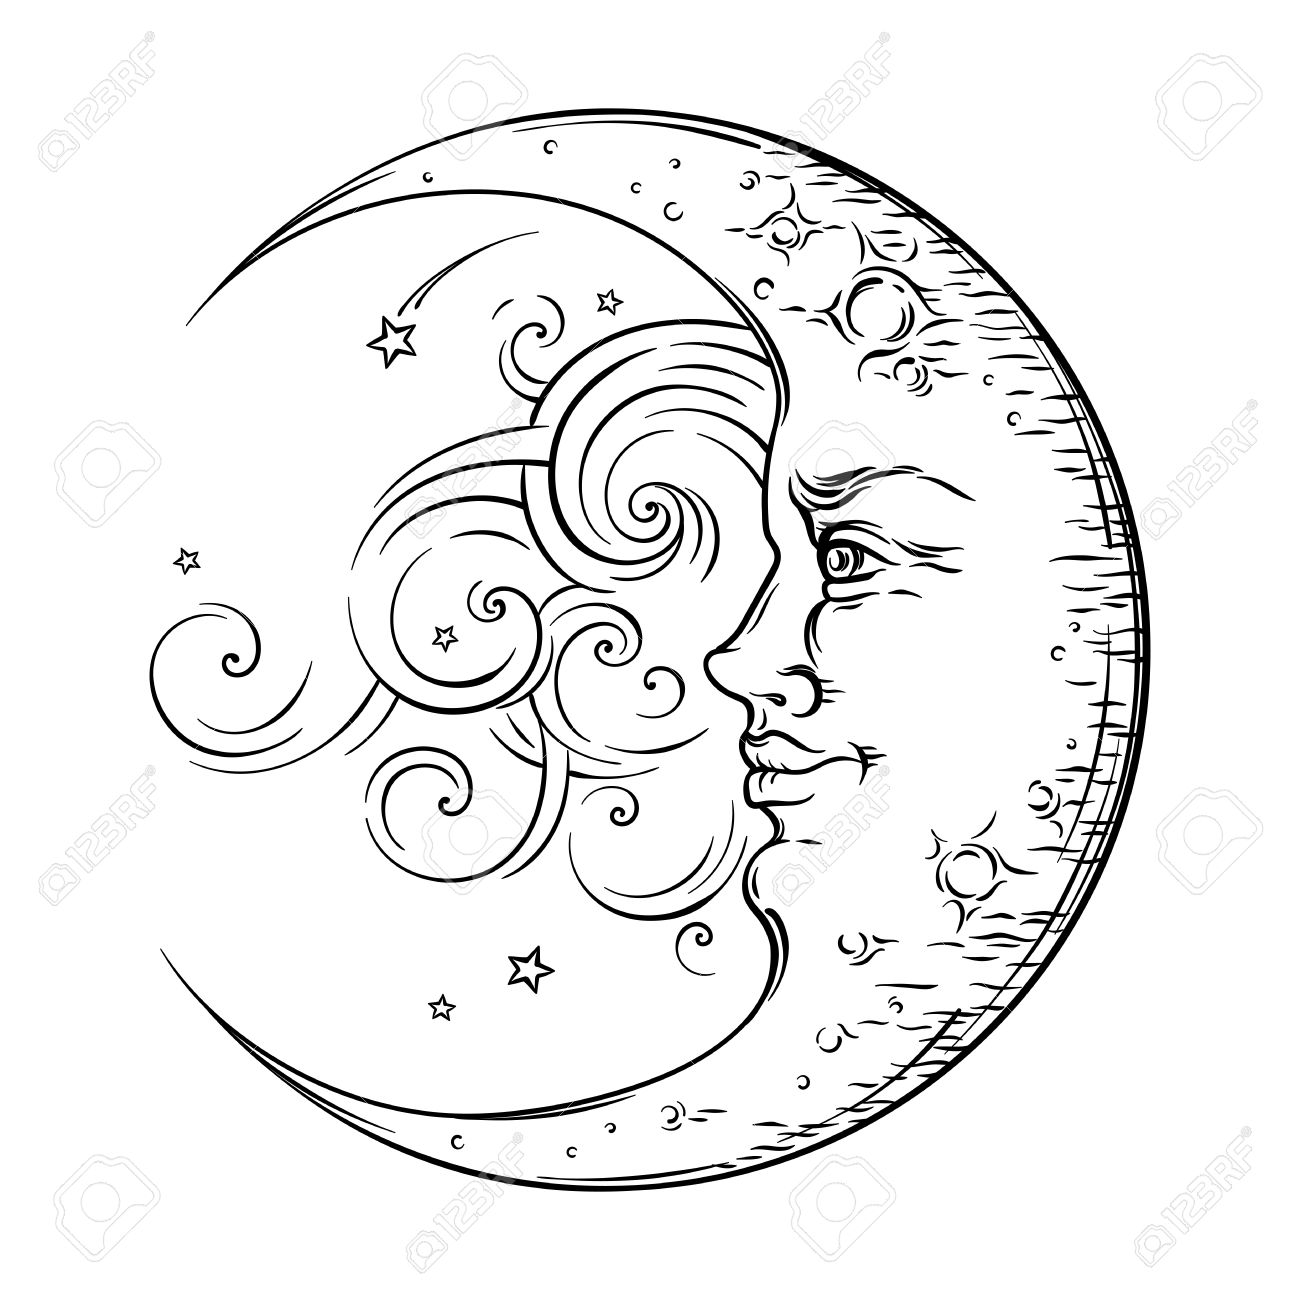 1300x1300 Antique Style Hand Drawn Art Crescent Moon. Boho Chic Tattoo